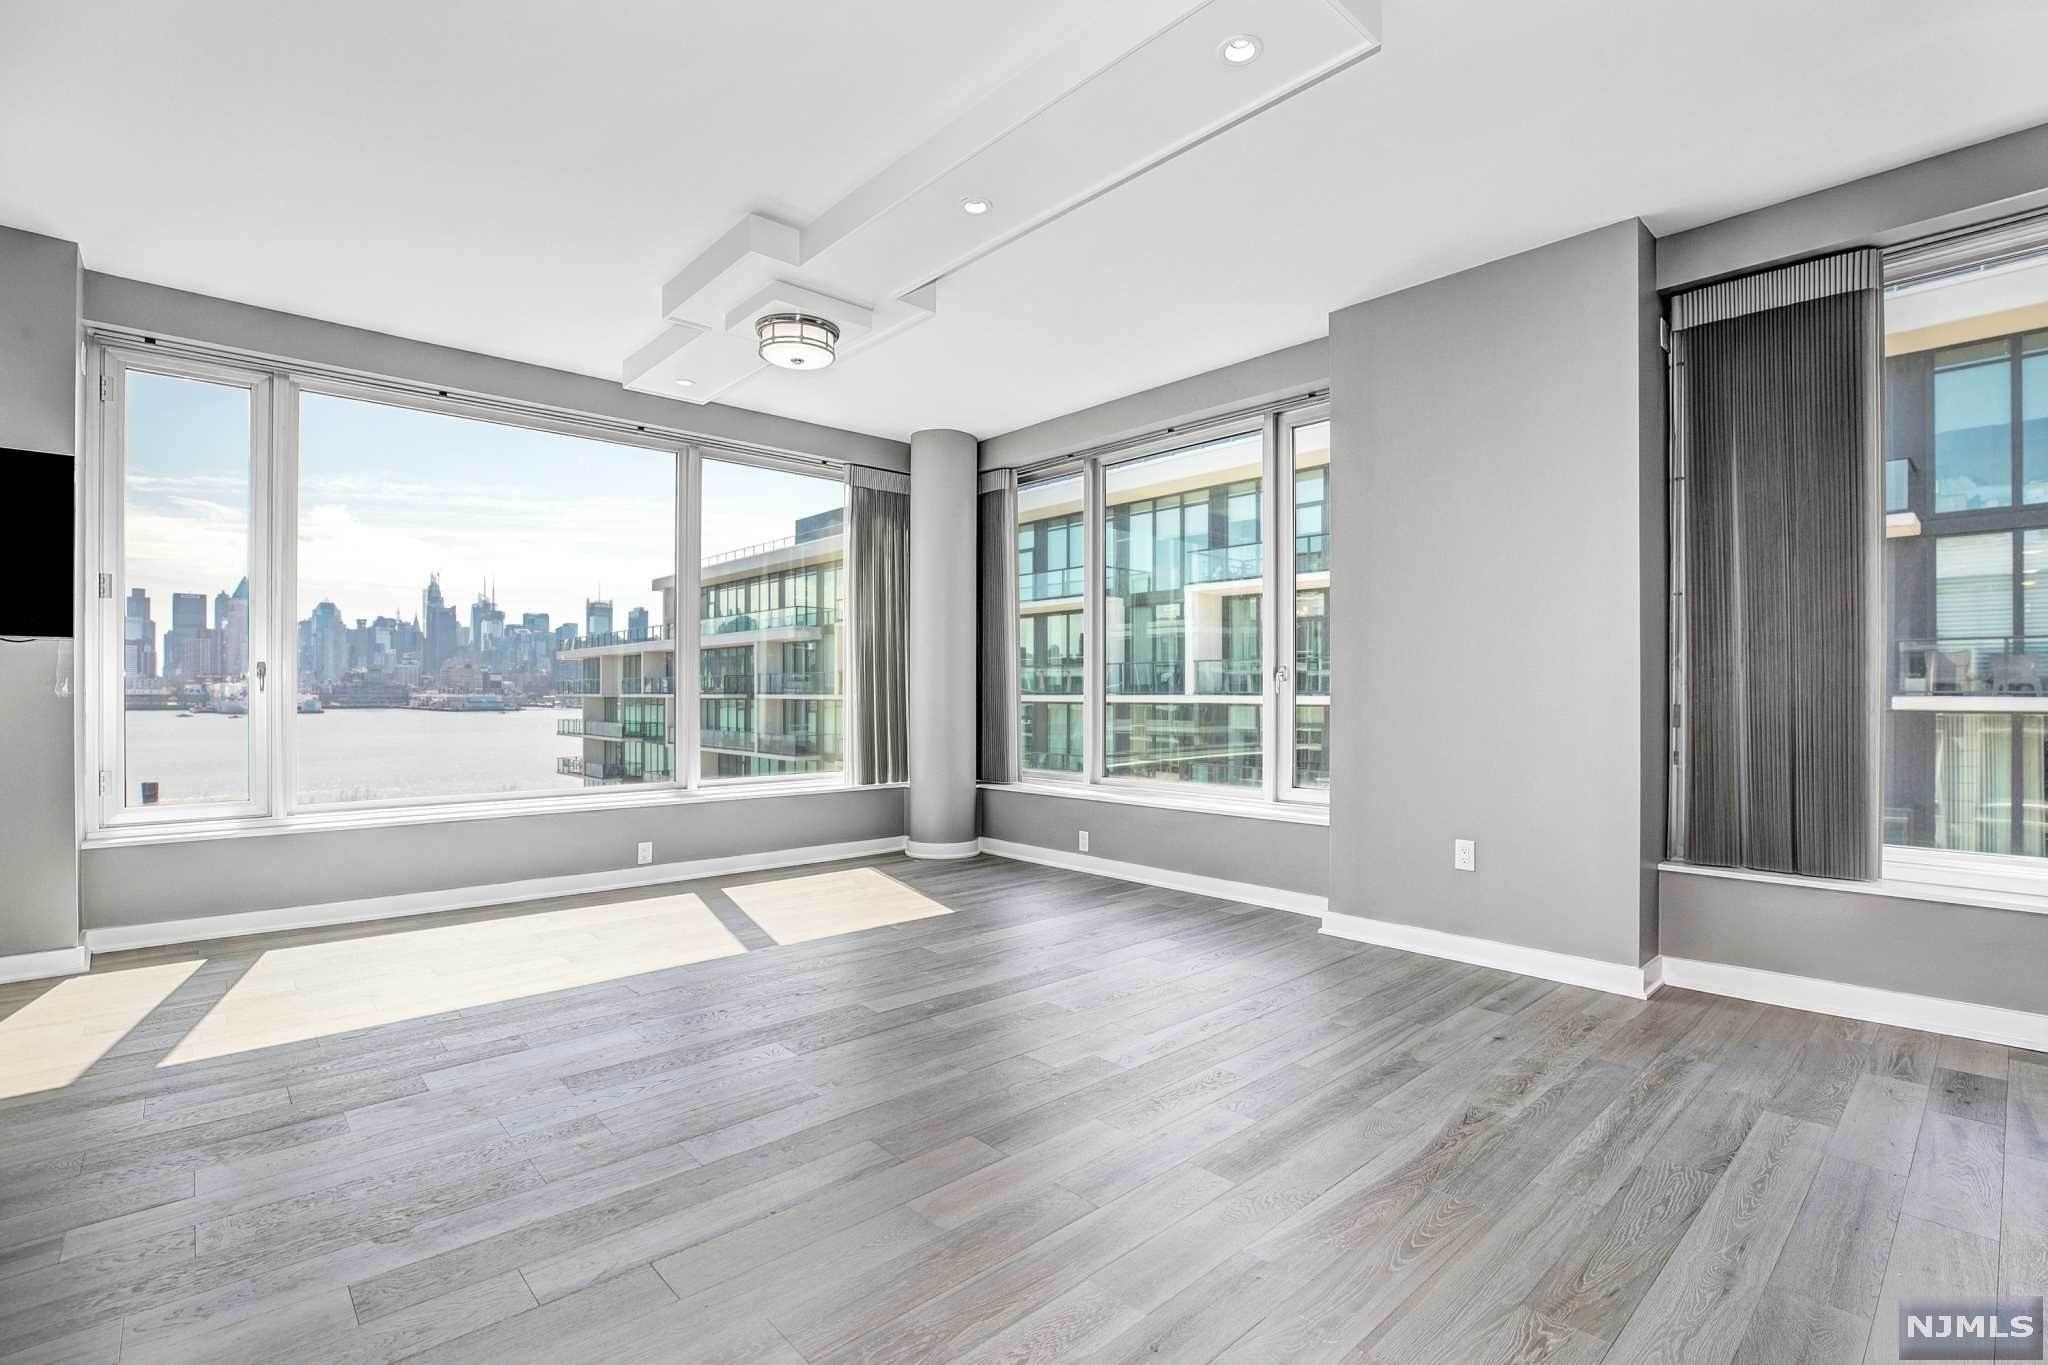 Condominium for Sale at 1000 AVENUEAT PORT IMPERIAL #601 Weehawken, New Jersey, 07086 United States